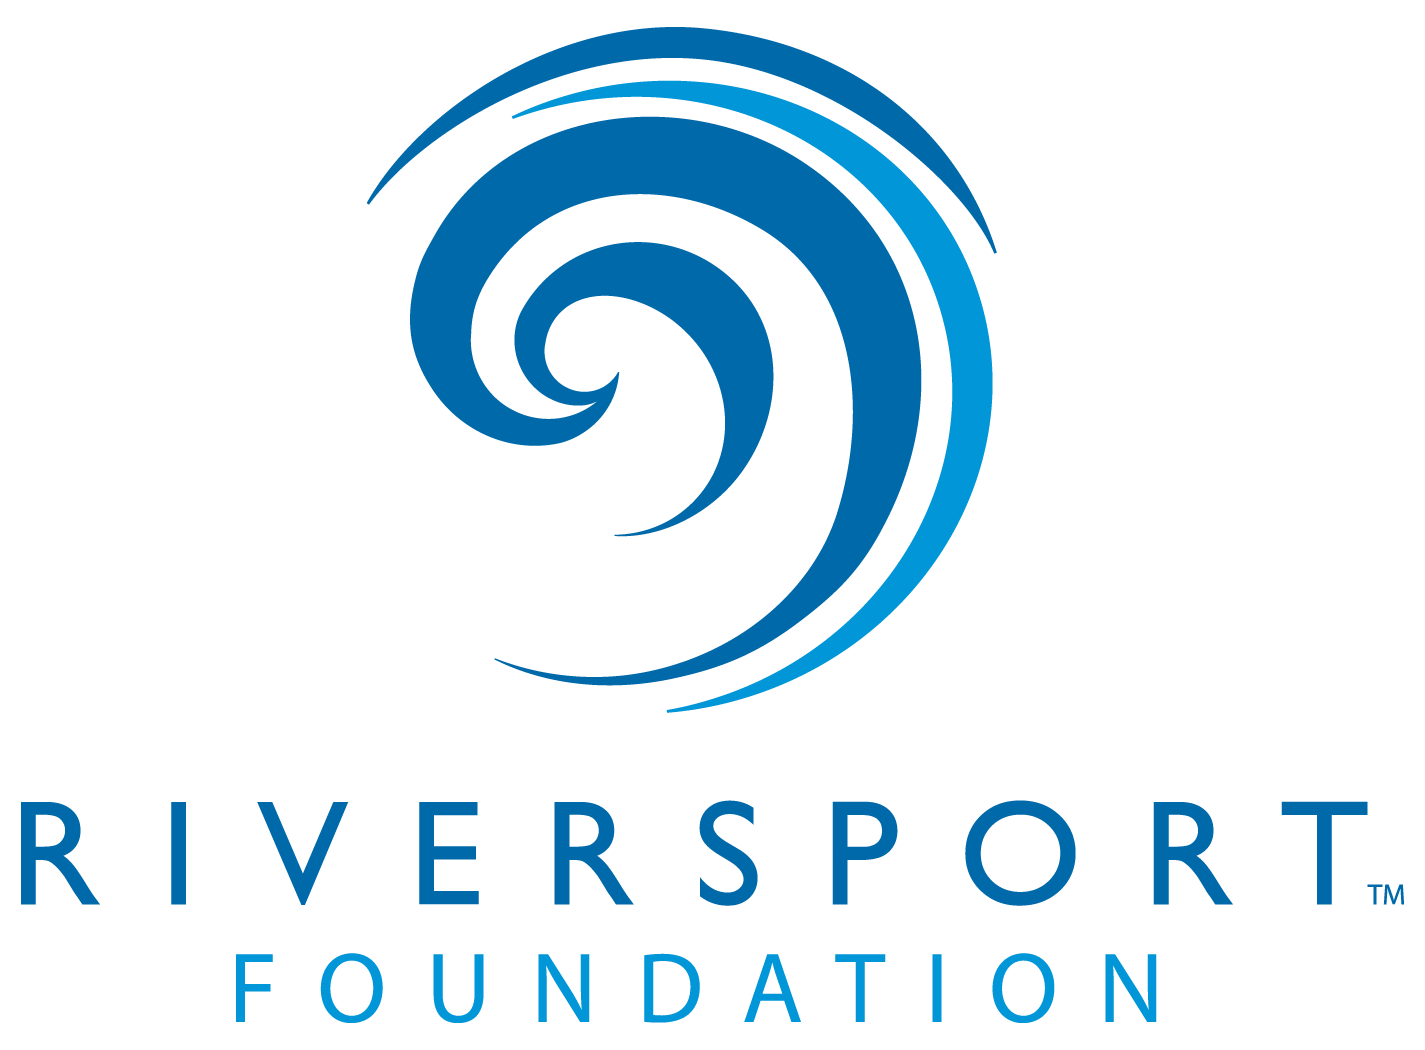 RIVERSPORT Foundation